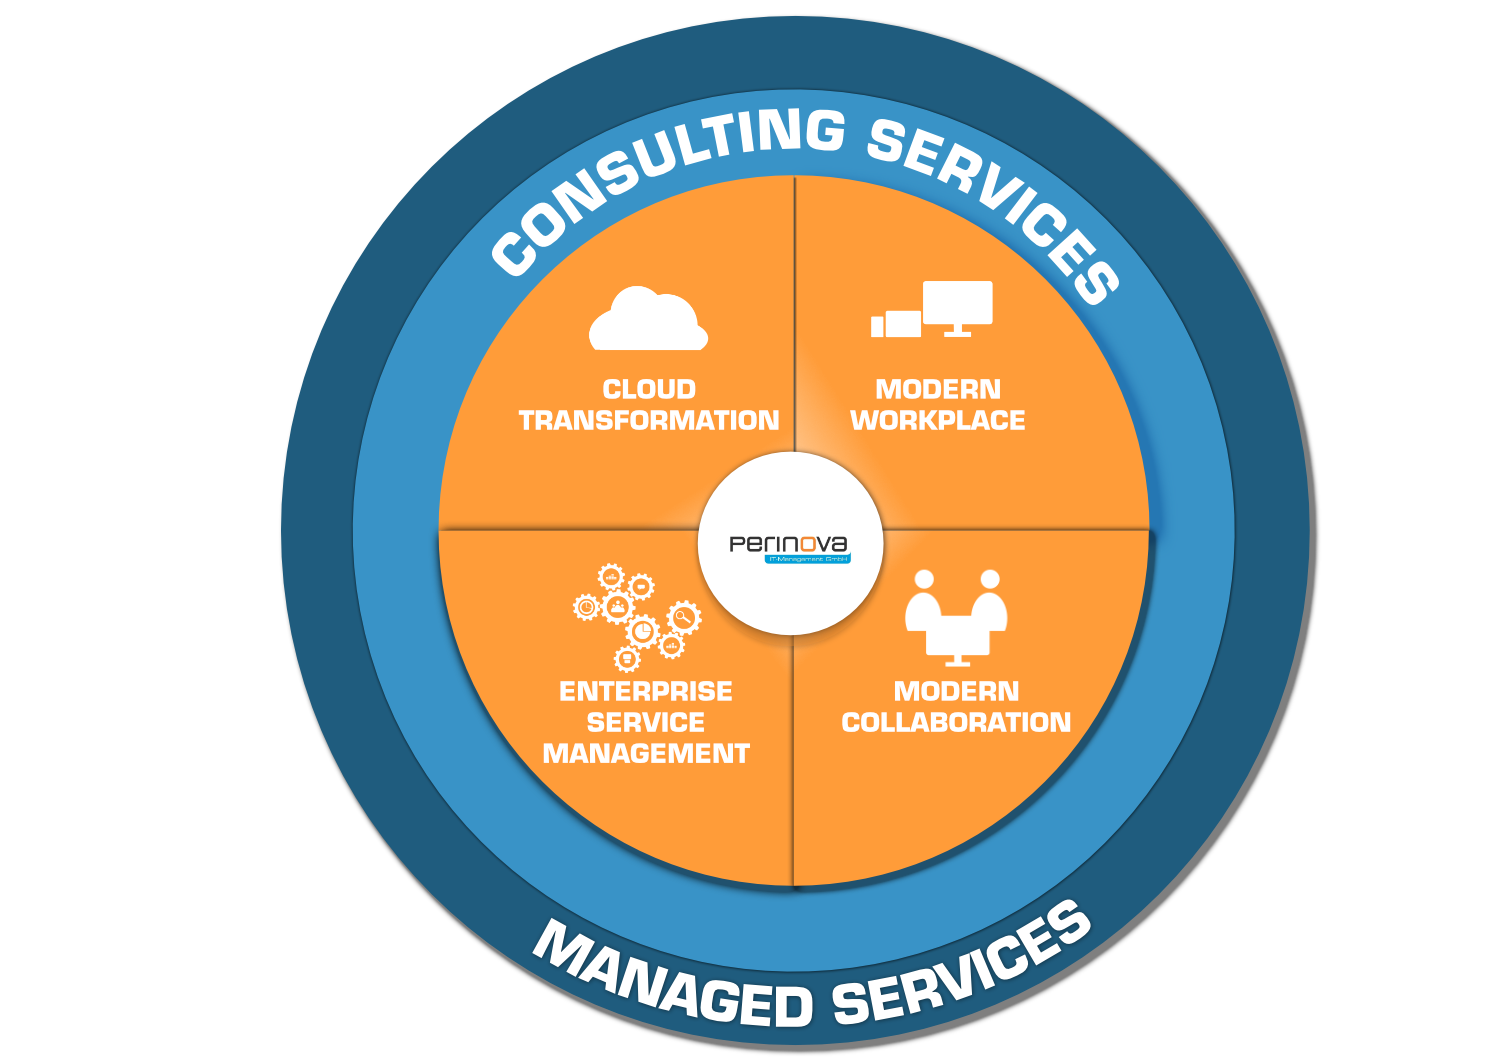 perinova: Consulting Services, Managed Services, Cloud Transformation, Modern Workplace, Enterprise Service Management, Modern Collaboration